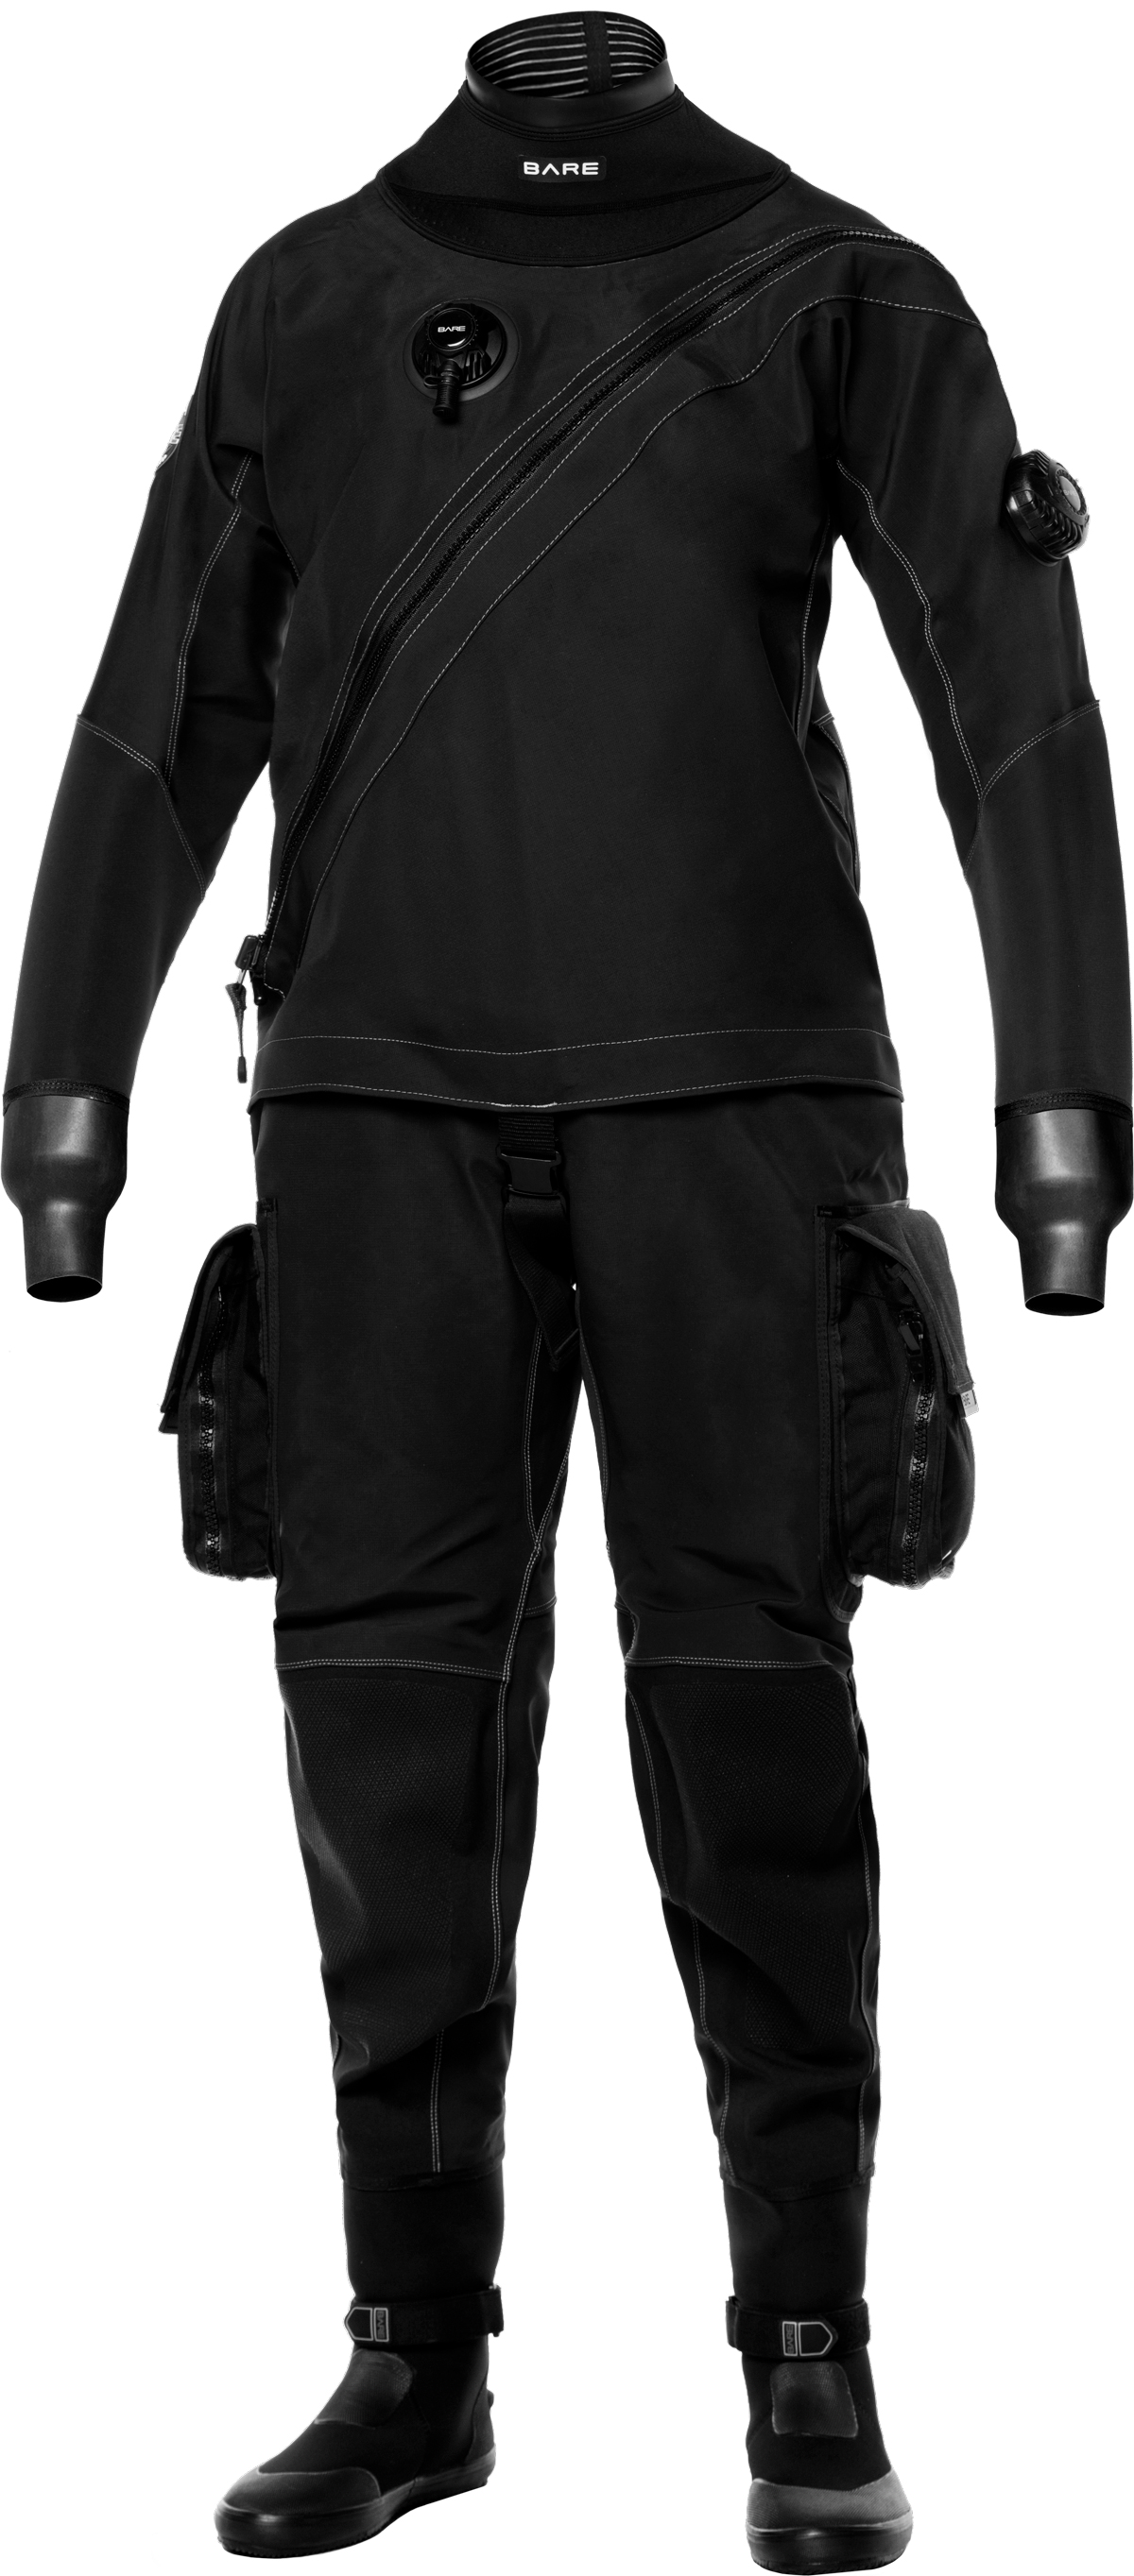 BARE Sports BARE X-MISSION EVOLUTION DRYSUIT